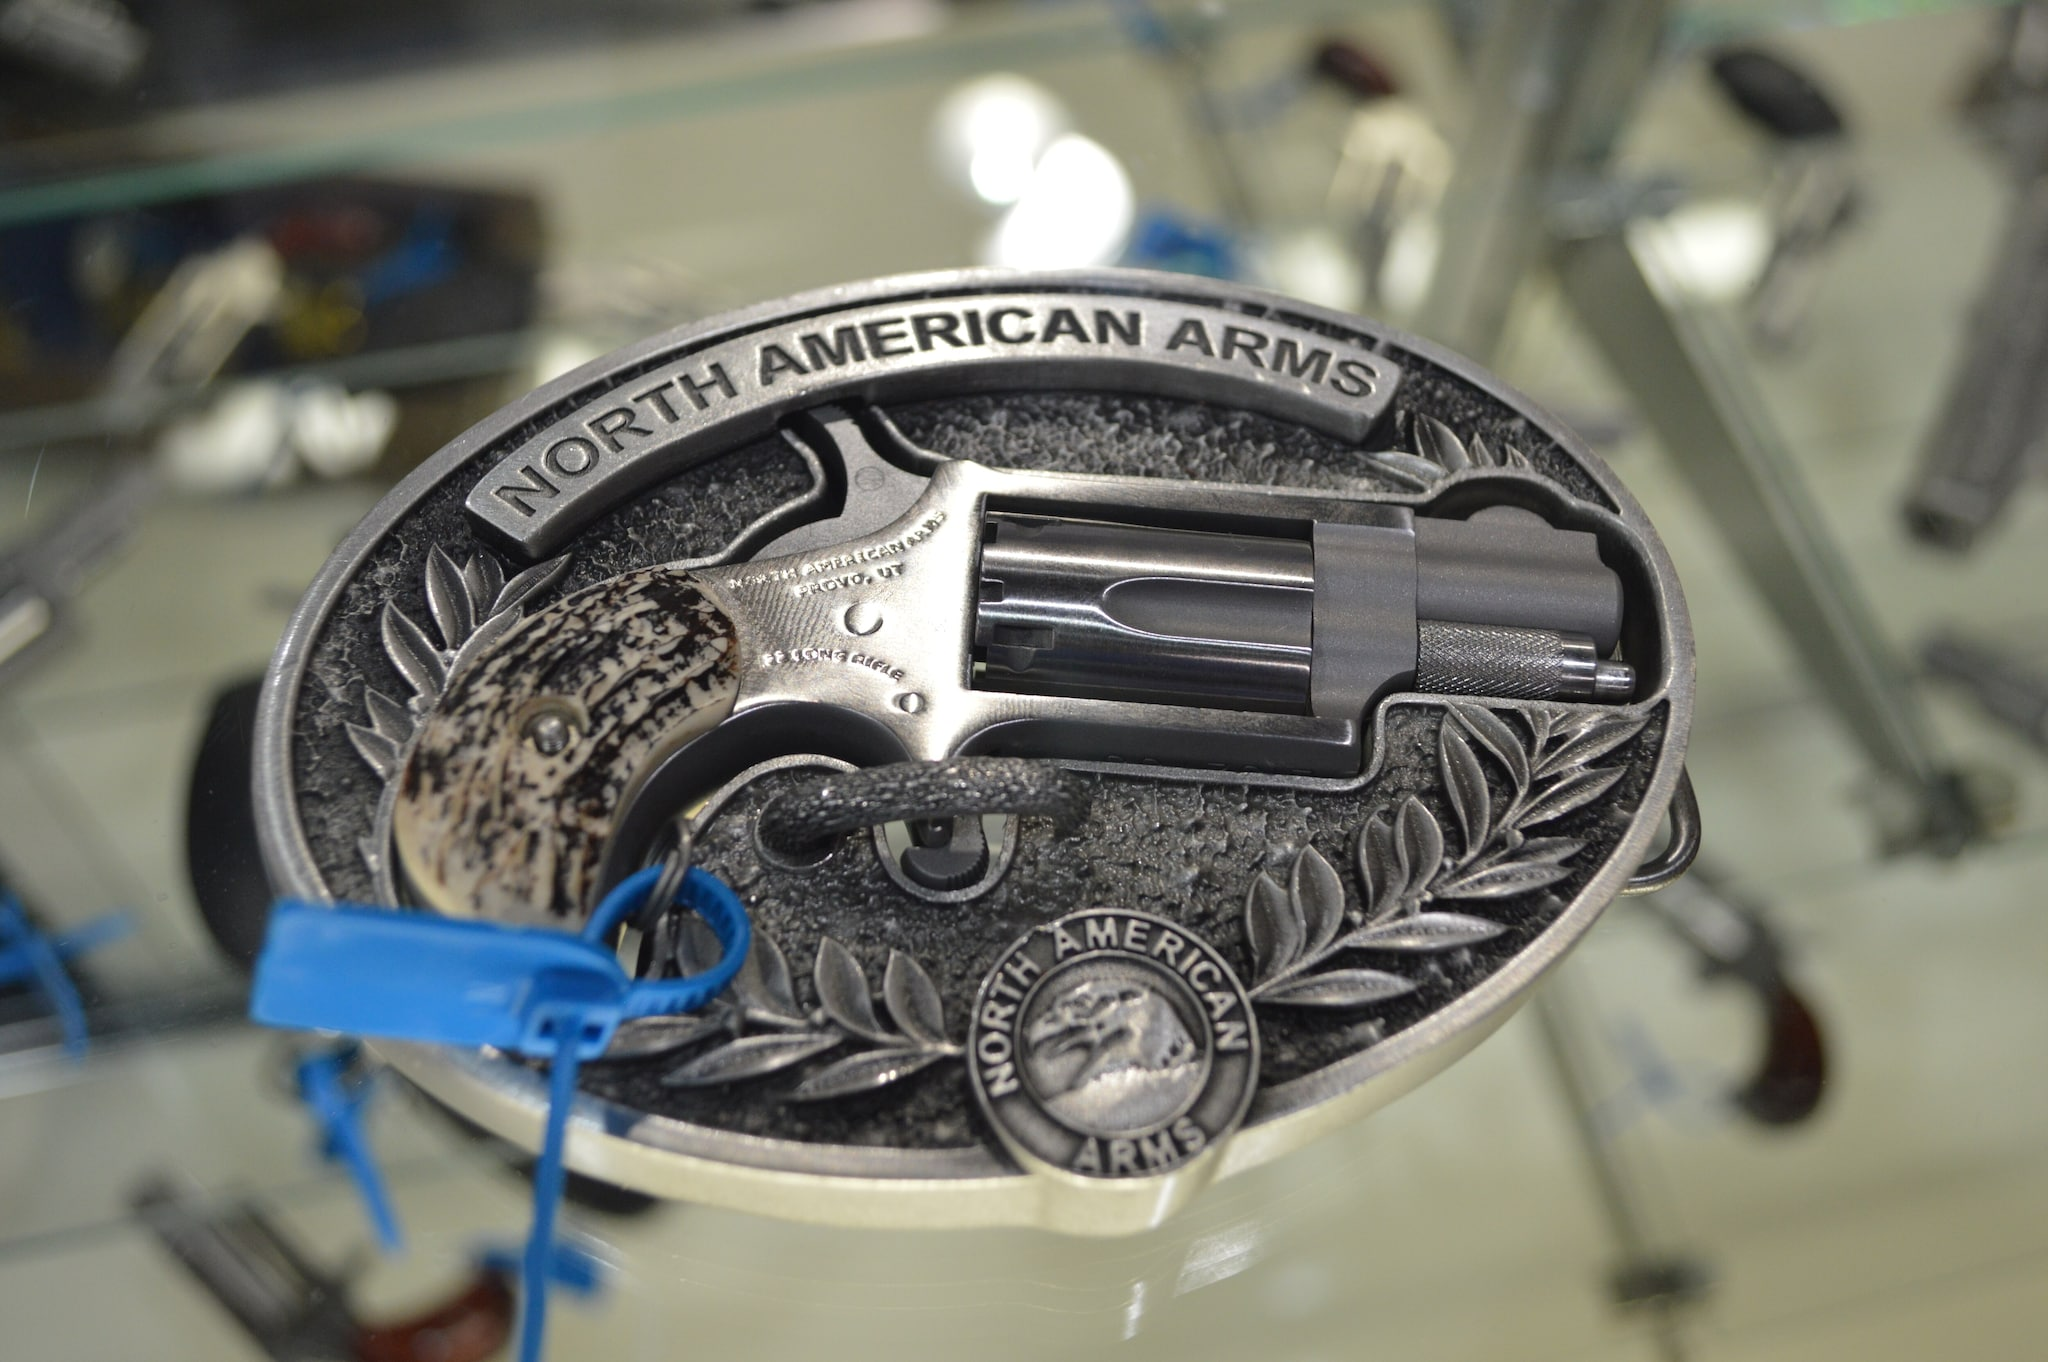 North American Arms has long been known for all things micro in the world of ultra-concealable firearms. Their belt-buckle pistols have a cult-like following, and shooters will be pleased to know they're still in production. (Photo: Kristin Alberts/Guns.com)